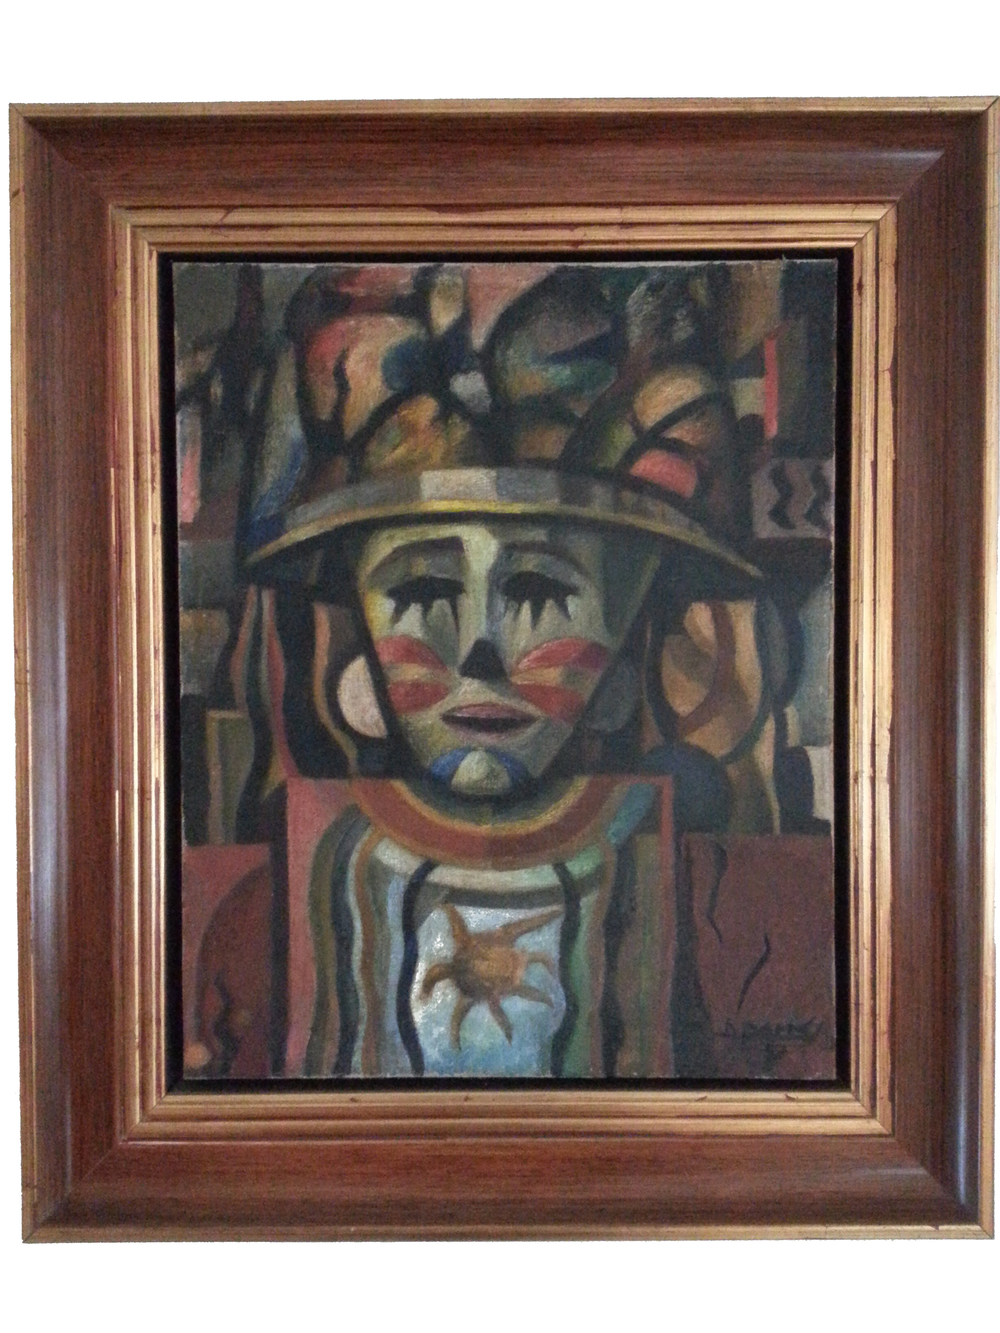 "Cabeza de Danzante  ( 1957 )   Oil on Canvas, Signed ( l.r. ) ""D. Paredes 57""  20"" x 17"" / 26 1/2"" x 23 1/2"" Framed    Price Available Upon Request    Artist Biography: Diógenes Paredes Castillo was born on May 5th / 1910 in Tulcán city, located in the province of Carchi, Ecuador.  When he was 19 years old he started to become really interested in painting and decided to study at the ""Bellas Artes"" School in Quito, where he later became a teacher and director. His left ideology led him to have communist tendencies and also to be atheist.  In 1938 Paredes founded the ""Sindicato de Escritores y Artistas del Ecuador"" (Labor Union of Writers and Artists of Ecuador) with Jorge Icaza, Benjamín Carrión, Eduardo Kingman, Demetrio Aguilera, and some others. Kingman called this labor union like ""an identification with the worker community, because we are considered just like workers situated in the field of culture"".  One of the most important activities organized by the Union Labor was, ""Los Salones de Mayo"" (the May Salons), where many paintings of urban landscapes as well as social or indigenous themes were exhibited. Paredes also exhibited two of his famous paintings: ""El Cargador y Los Pondos"" (the shipper and the water carriers) which represented the life of the indigenous people in the country side. One of the typical pattern strongly handled was the one that leagued the man with the ground, that according to the critique both of them formed an inseparable unity.  In 1944 The Union Labor of Writers and Artists of Ecuador did not work anymore and the Ecuadorian House of Culture was created. The first art impulsion given by this one was the creation of ""Los Salones Nacionales de Artes Plásticas"" (National Salons of Plastic Art). After few years Paredes won the First Prize in the ""First Salon of Plastic Art), and for this reason the House of Culture told him and José Enrique Guerrero to take charge of the painting of the walls located in the lobby of the new building of the Institution in ""La Plaza de Mayo"".  In 1946 he traveled to France, awarded with a scholarship granted by the French government where he studied at the ""Bellas Artes"" School in Paris. Some years later he was invited by governments of those countries and visited the Republics in the East Europe, the Soviet Union and the Communist China.  Paredes, as member of the Communist Party had was always worried about claiming the social injustice and the exploitation of the indigenous through his paintings. During the period where the ""Cold war"" imposed anti-communist tendencies in all Latin America, Paredes preferred to leave his job than his ideas. Since then he was only devoted to the painting.  The approchement of Paredes to the indigenous people was reached by following the contemporary line of Alfred Schutz. The indigenous tendency of Diógenes Paredes is the construction of the situation of the indigenous people. This one is taken from the glance or look of the urban ""mestizo"" of medium level which enroll a stigma in the body of the dominated indigenous, seen not as a whole human being but as an insignificant and undervalued person.  The work of Paredes about the identity of the indigenous people is mainly focused in the deformity of their bodies. The marks that are used to create his pictorial universe are: faces with boned cheek bones, deformity of the extremities, bitter appearance, lost glance, fierced eyes, frowned frown and enlargement of hands and feet, usually covered with rags and submerged until their knees with mud. In his work the ochre and gray colors are used a lot as well as binding. Paredes tried to represent the indigenous people like helpless and miserable human beings who suffer the exploitation and the abandon of the national society. They are also considered like people that exhibit their marks of contempt in order to reach the recognition of the society, showing themselves as fair people that tend to the equality and social improvement.  In the beginning this deformation was not only seen like a expressionist value but also like an interchange with the reality of the indigenous.  Through his paintings Paredes has been able to give a visual form to the social, scientific and political speech around the indigenous people.  Since 1950 that tendency changed due to a bigger approval for a kind of art that does not claim about the exploitation and the abuse, a kind of art that neither stigmatizes nor deforms the body of the indigenous race. For this reason Paredes will focus later his work on the man of the coast side and his natural environment. He will also dedicate part of his production to portraits and landscapes but he will not give up to the indigenous theme.  When Paredes died in 1968, he left a limited production of his work because many of his paintings have disappeared or it is not known where they are. He was always a very generous man, so he used to give his paintings as presents without registering them.  AWARDS:  1942 Second Prize of Painting, ""Salón Mariano Aguilera."" in Quito - Ecuador. 1945 First Prize in the ""Salón Nacional de Artes Plásticas"" organized by the House of Culture in Quito - Ecuador. 1947 First Prize of Painting, ""Salón Mariano Aguilera"" in Quito – Ecuador. 1948 First Prize ""IV Salón de Mayo"" in Quito - Ecuador. 1964 Gold Medal, ""Atelier de Arte"" in Quito – Ecuador.  INDIVIDUAL EXHIBITS:  1949 Ecuadorian House of Culture in Quito - Ecuador. 1955 Individual Exhibit in Cuenca - Ecuador.  COLLECTIVE EXHIBITS:  1946 Collective about Ecuadorian Art in the Unesco Salons in París - Francia. 1953 National Salon of Plastic Arts in Quito - Ecuador. Collective Sample presented in Montevideo - Uruguay. 1954 Collective ""Modern and Colonial Art"" in Buenos Aires – Argentina. 1958 Exhibit of Ecuadorian Art – Art Museum in Lima – Perú. 1967 Collective ""Plastic Testimony of Ecuador"" in Quito – Ecuador."